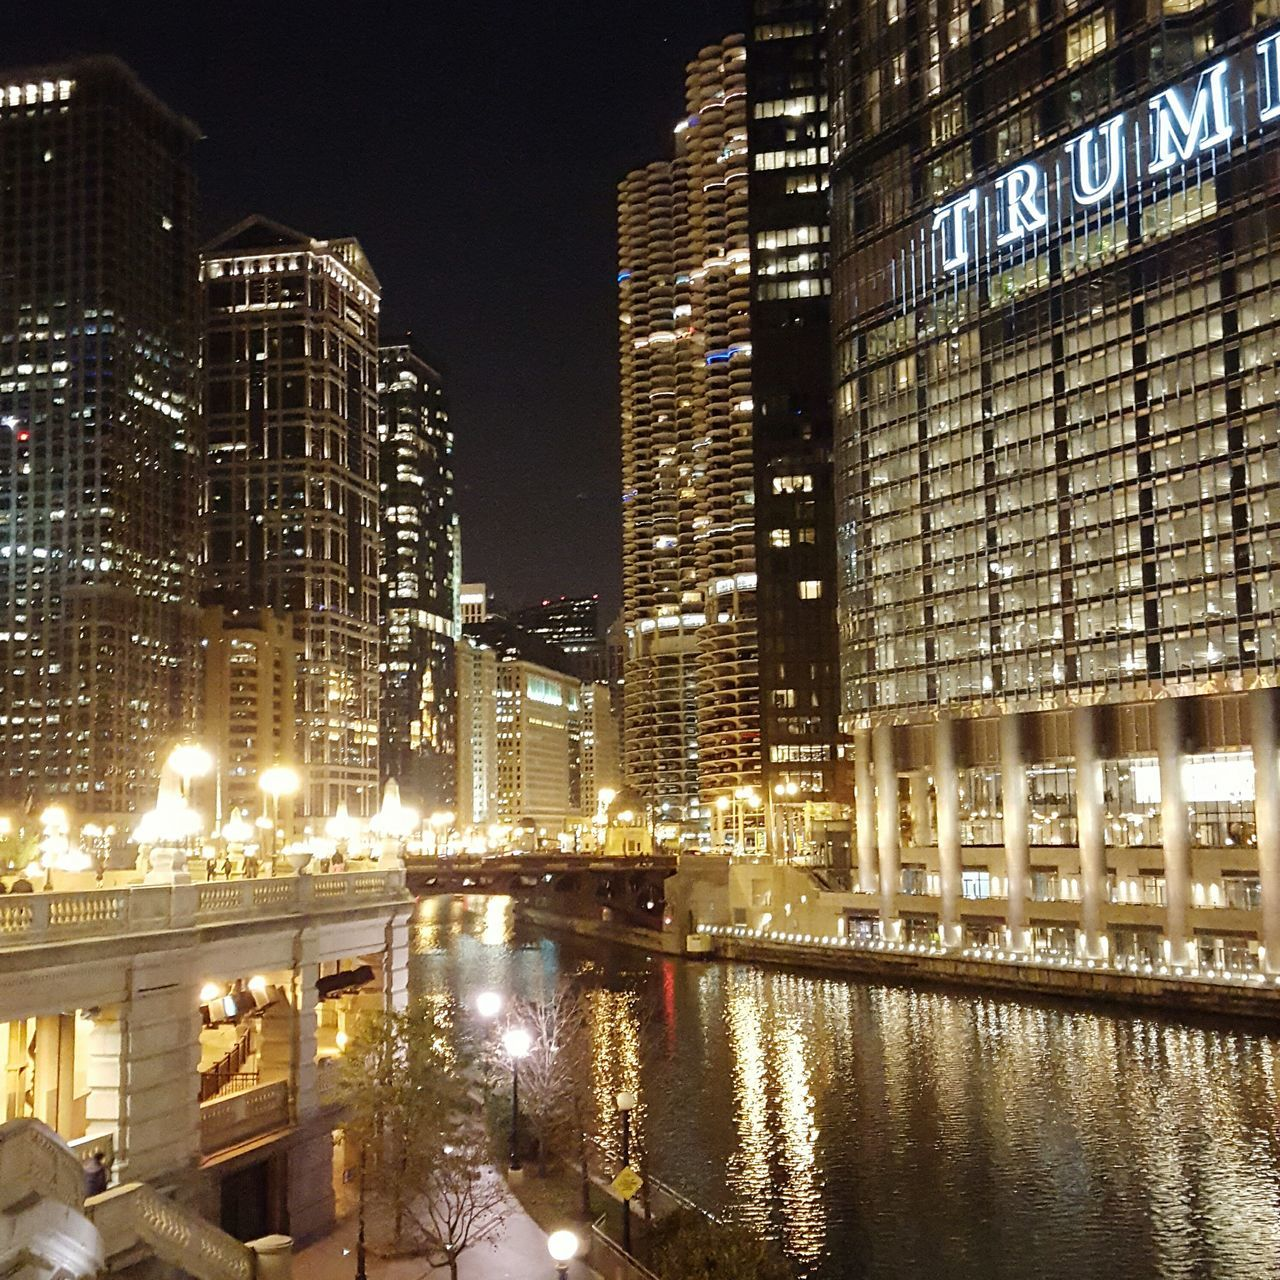 architecture, building exterior, built structure, illuminated, night, city, skyscraper, modern, river, reflection, water, no people, outdoors, cityscape, sky